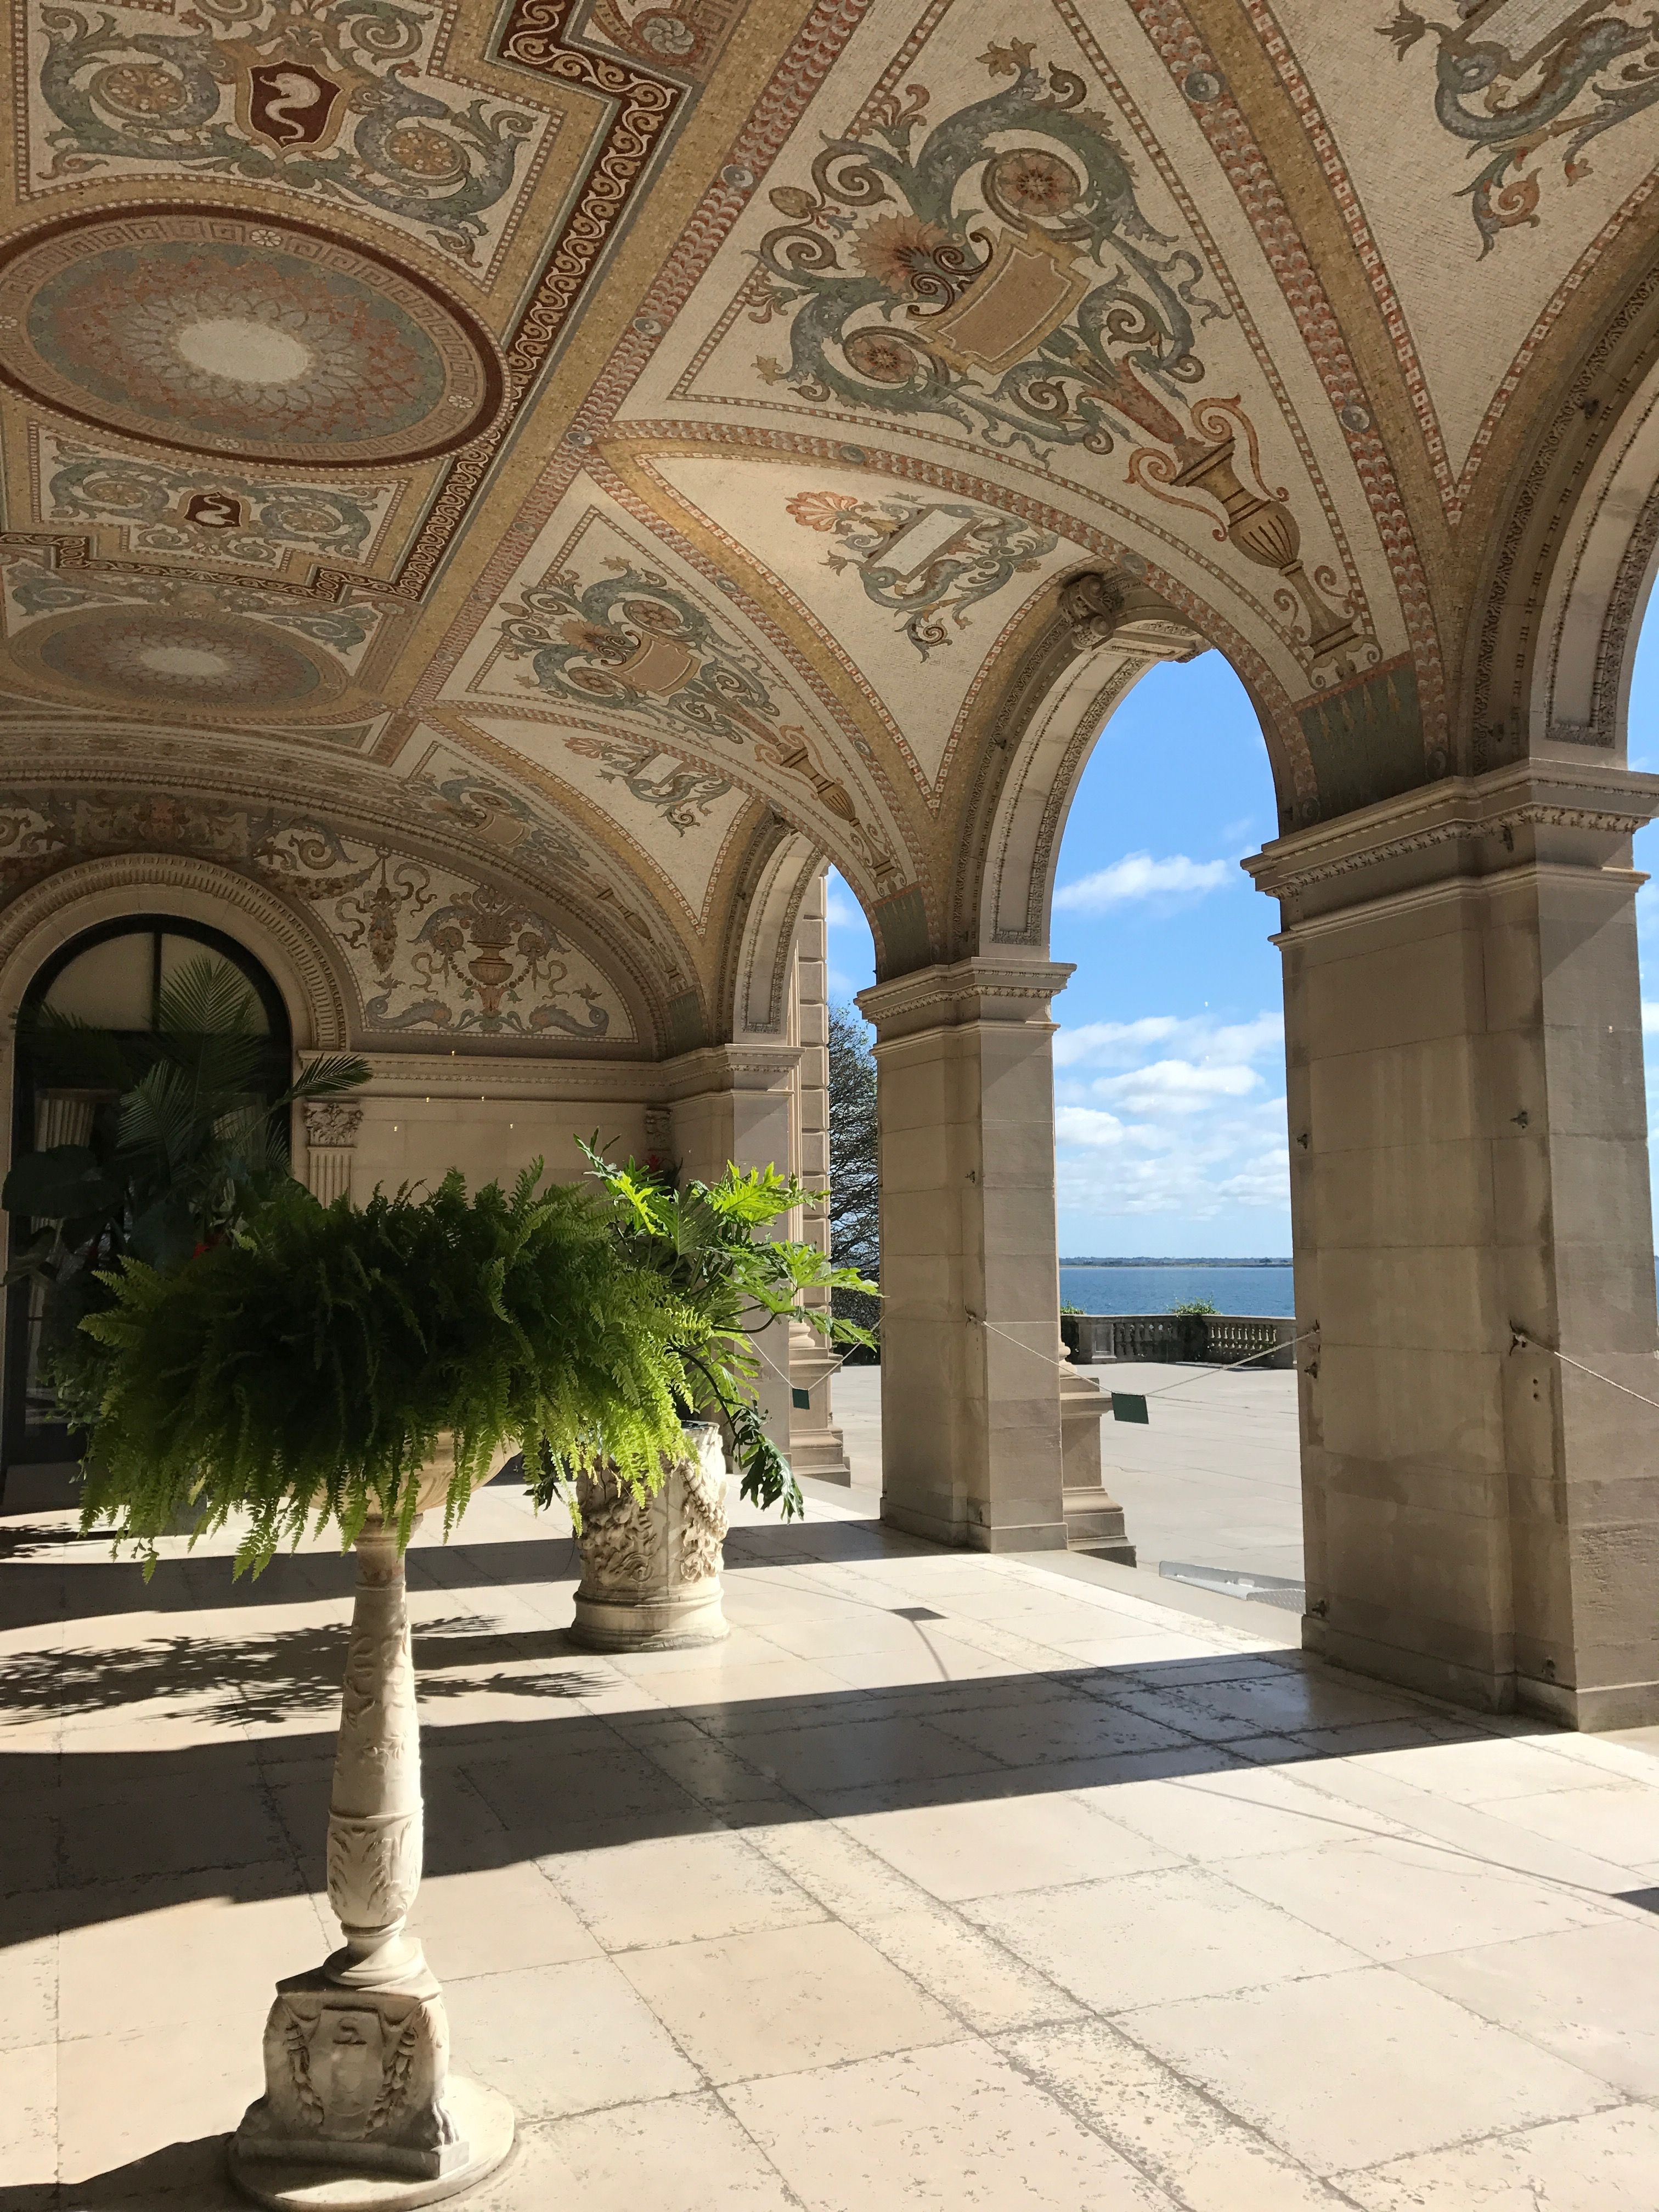 Outdoor Loggia -The Breakers Mansion | Ocean air, Mansions